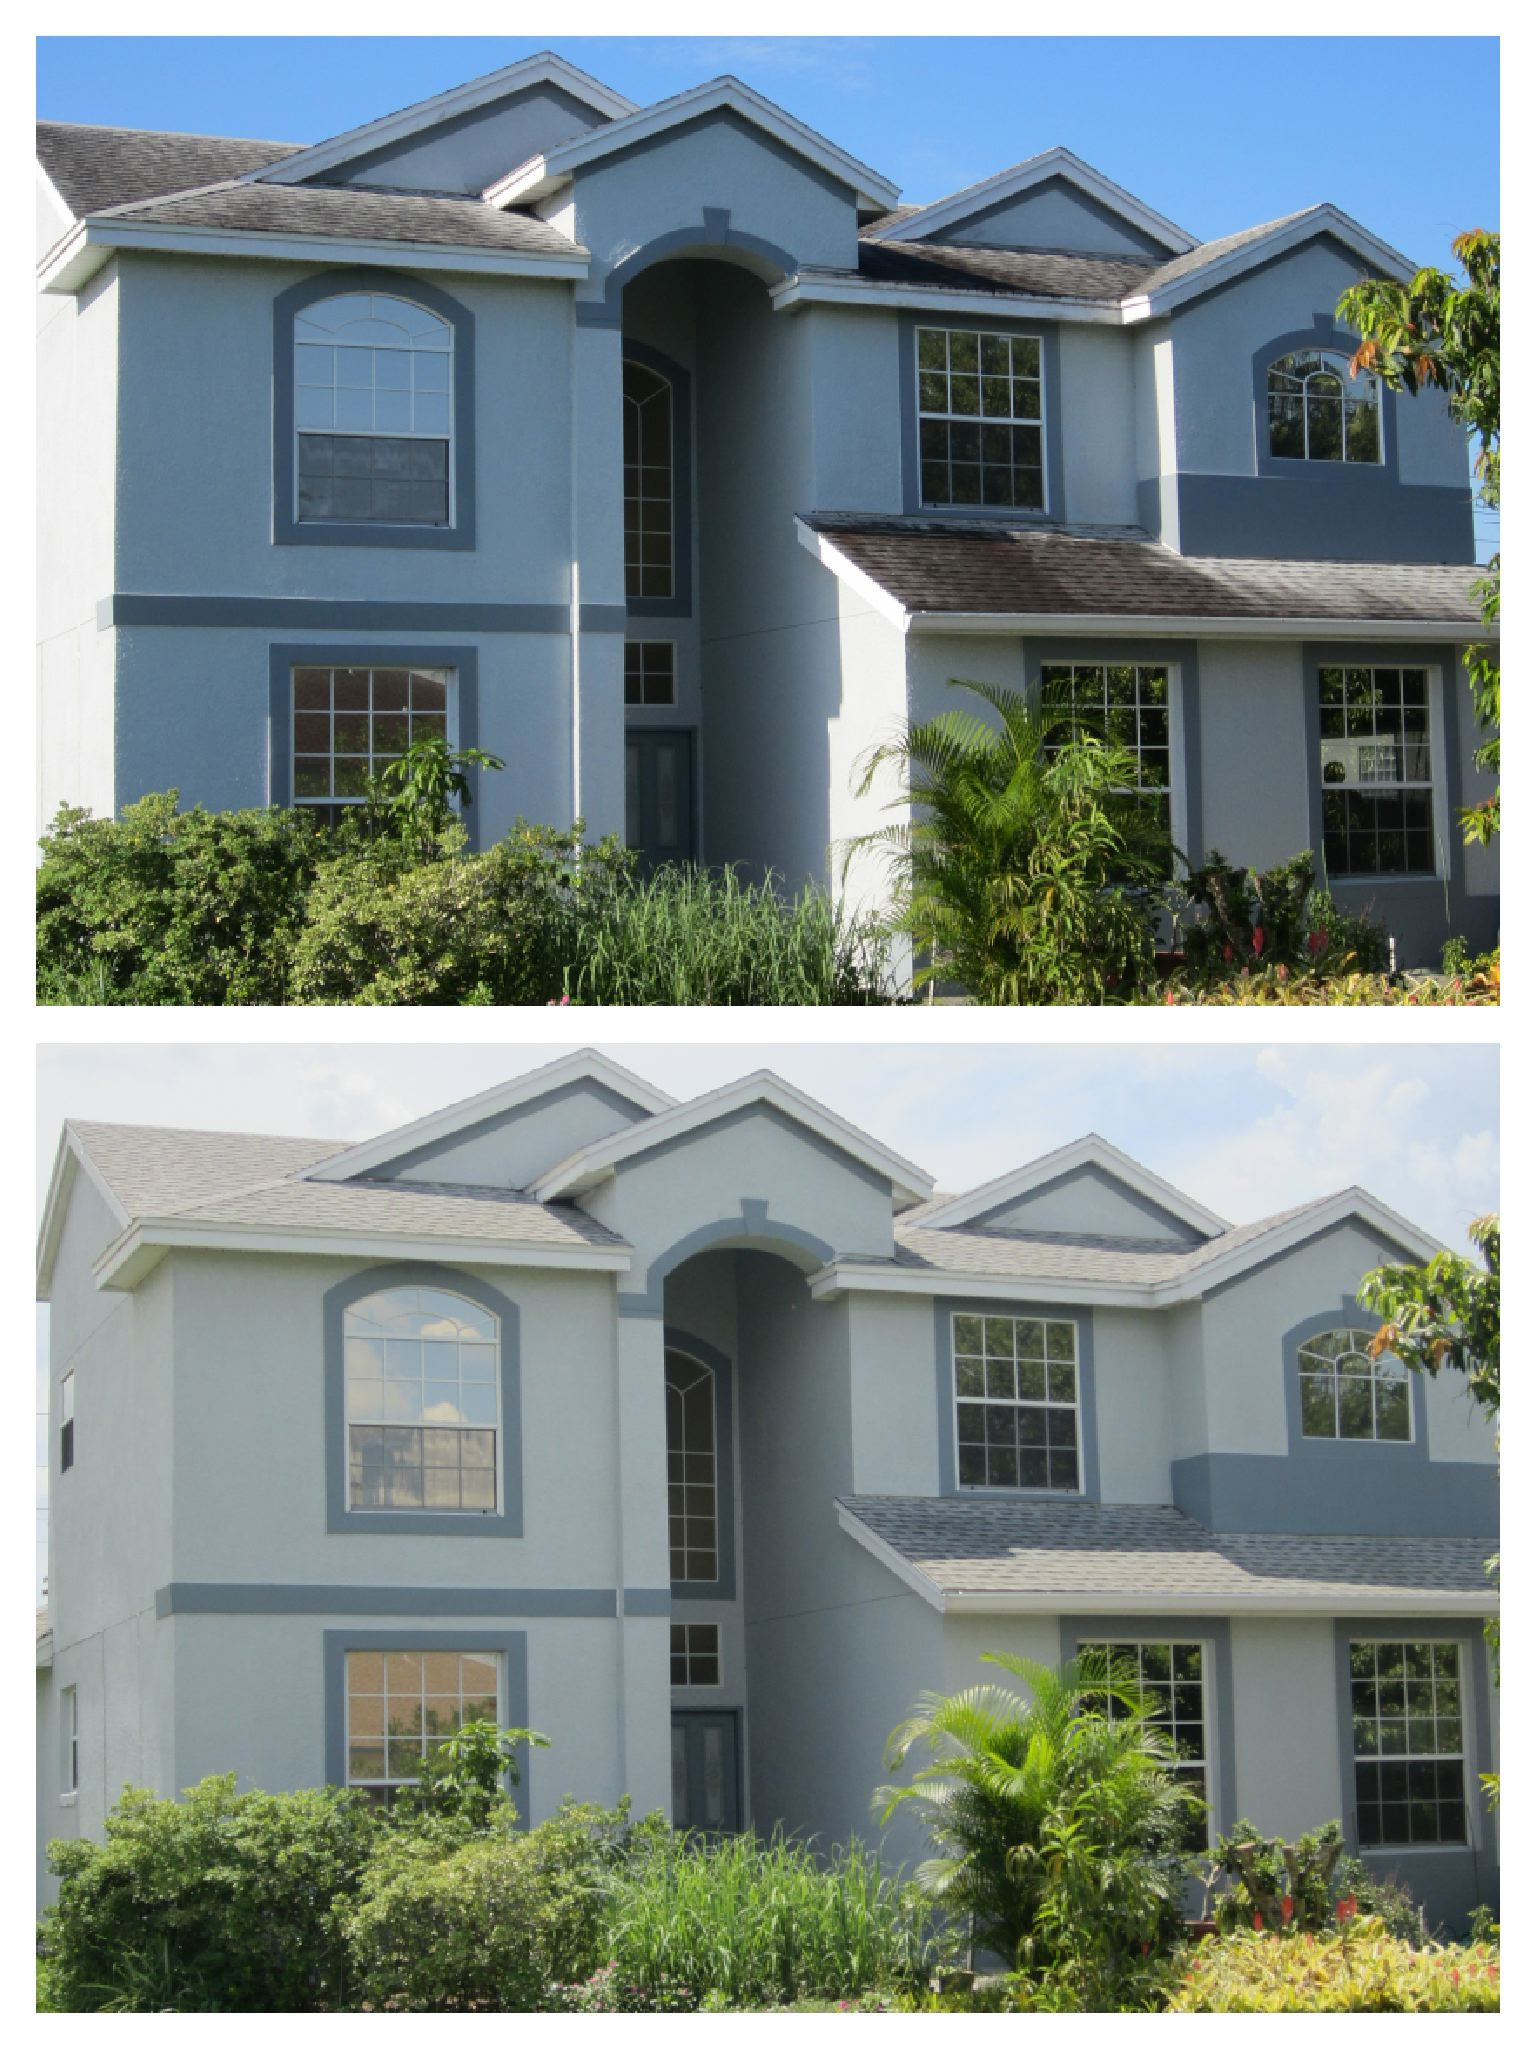 Roof Cleaning And Pressure Washing Winter Park Lake Mary